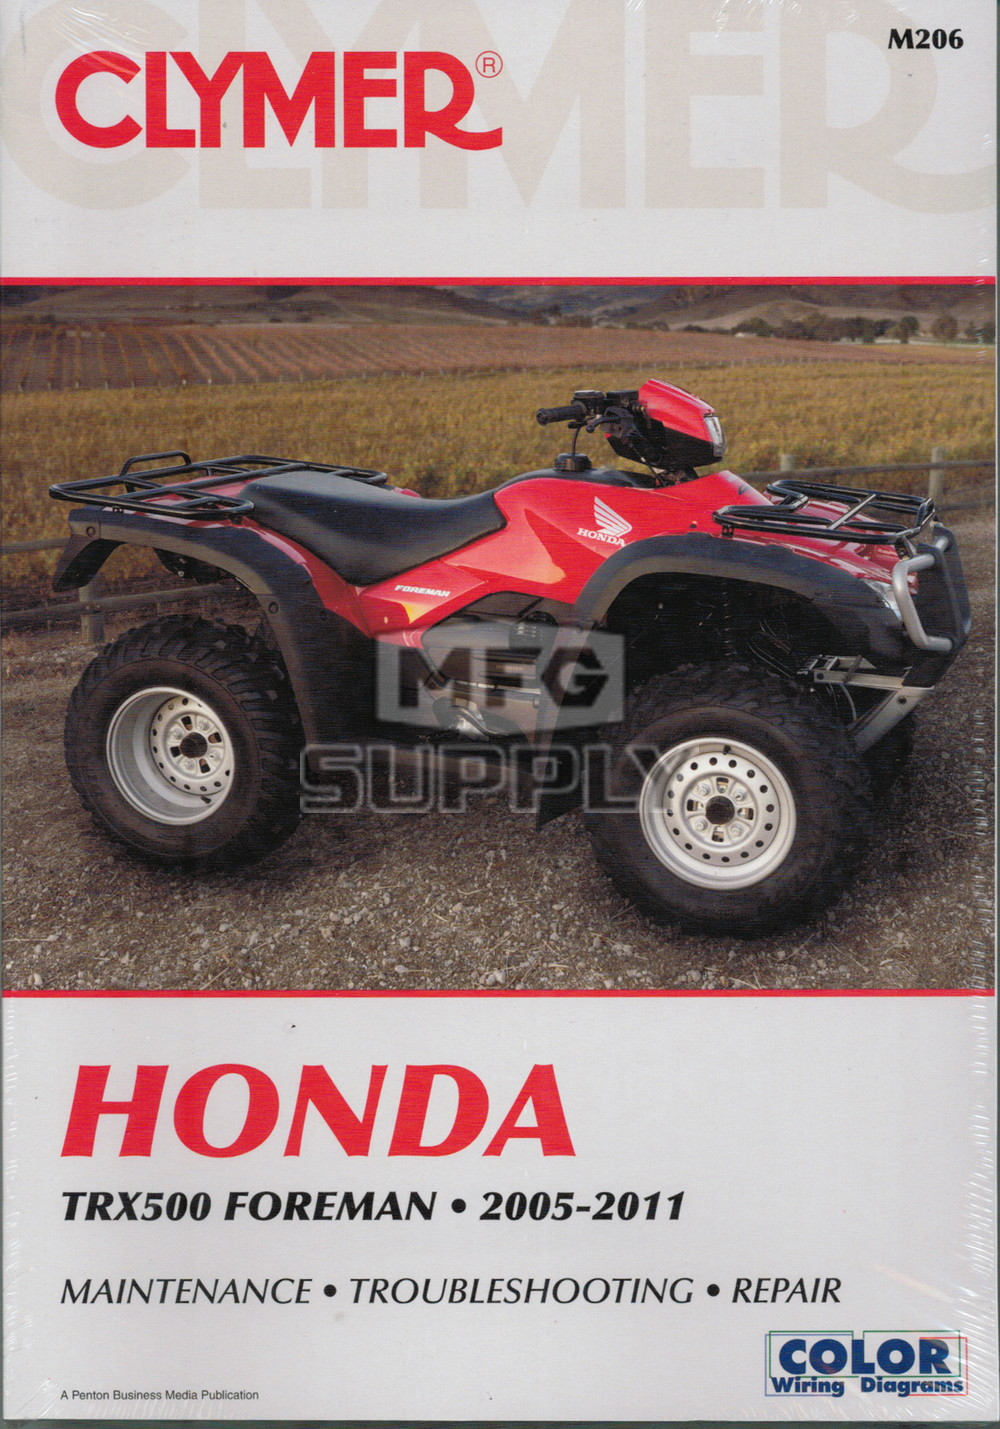 Cm206 0511 Honda Trx500 Foreman Repair Maintenance Manual. Cm206 0511 Honda Trx500 Foreman Repair Maintenance Manual. Honda. Es Parts Foreman Honda Diagramfrontaxel At Scoala.co